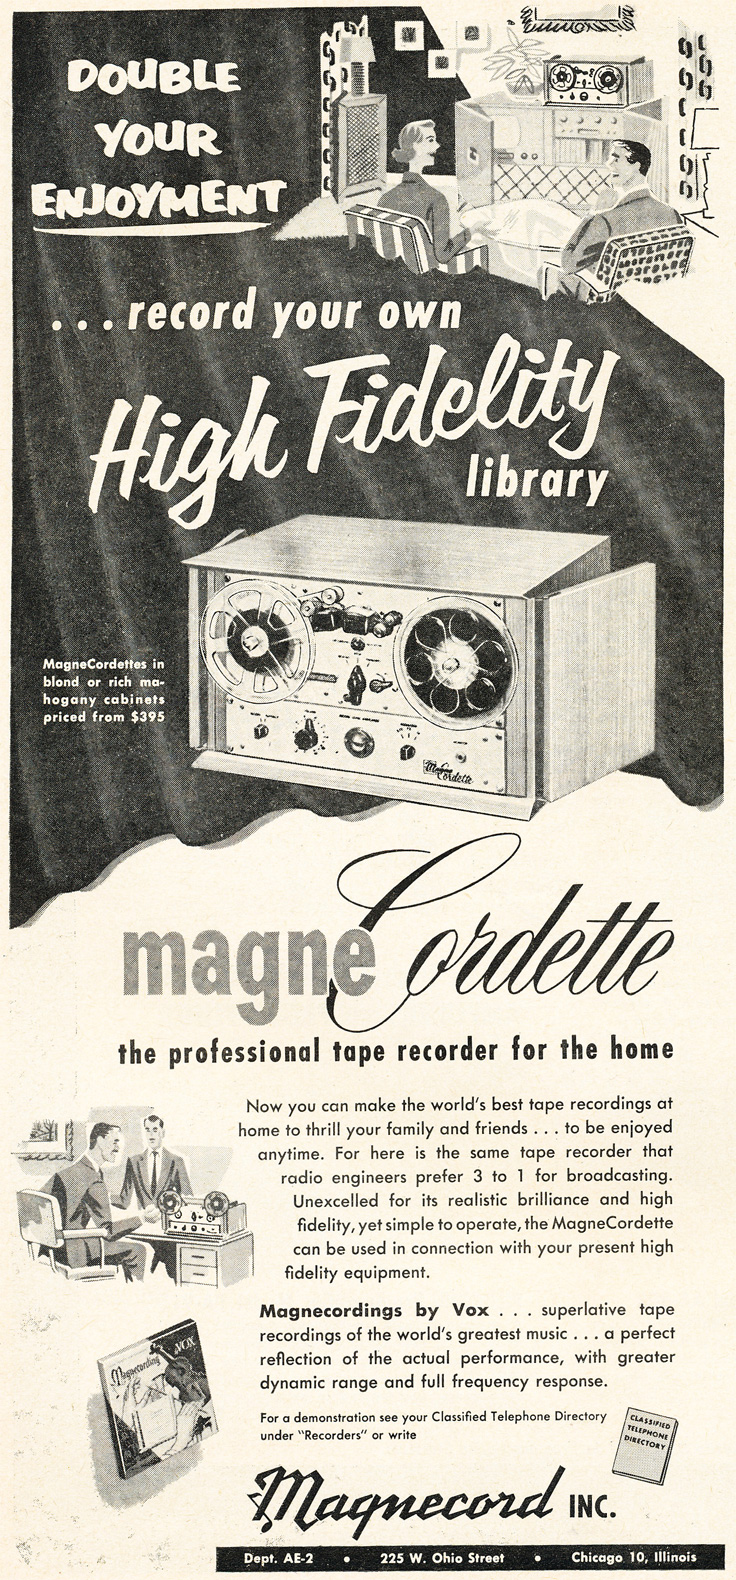 1953 Magnecord Magnecordette reel tape recorder ad in Reel2ReelTexas.com's vintage recording collection